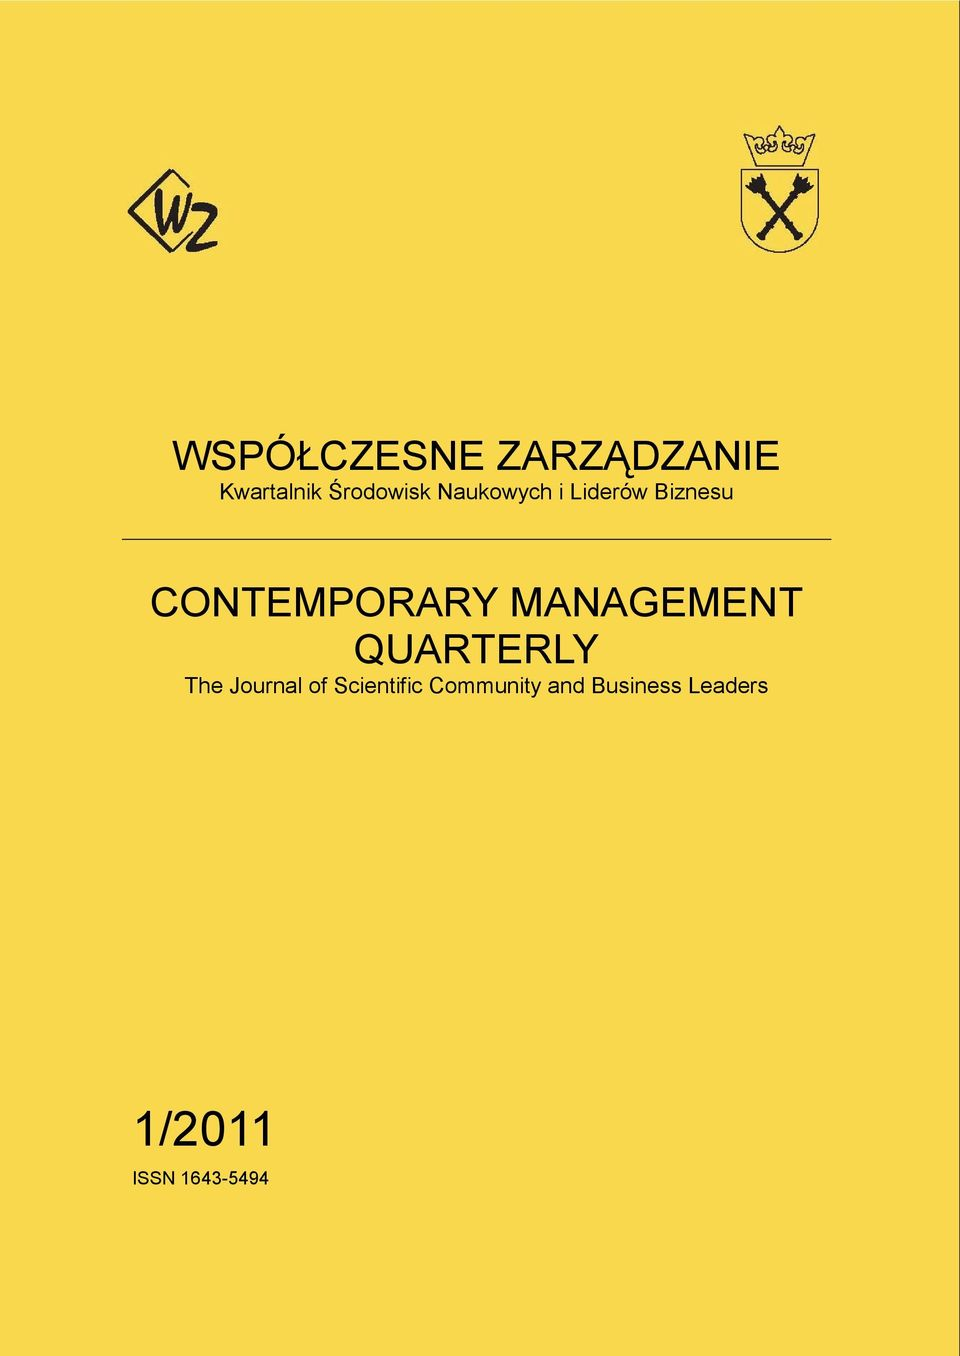 MANAGEMENT QUARTERLY The Journal of Scientific